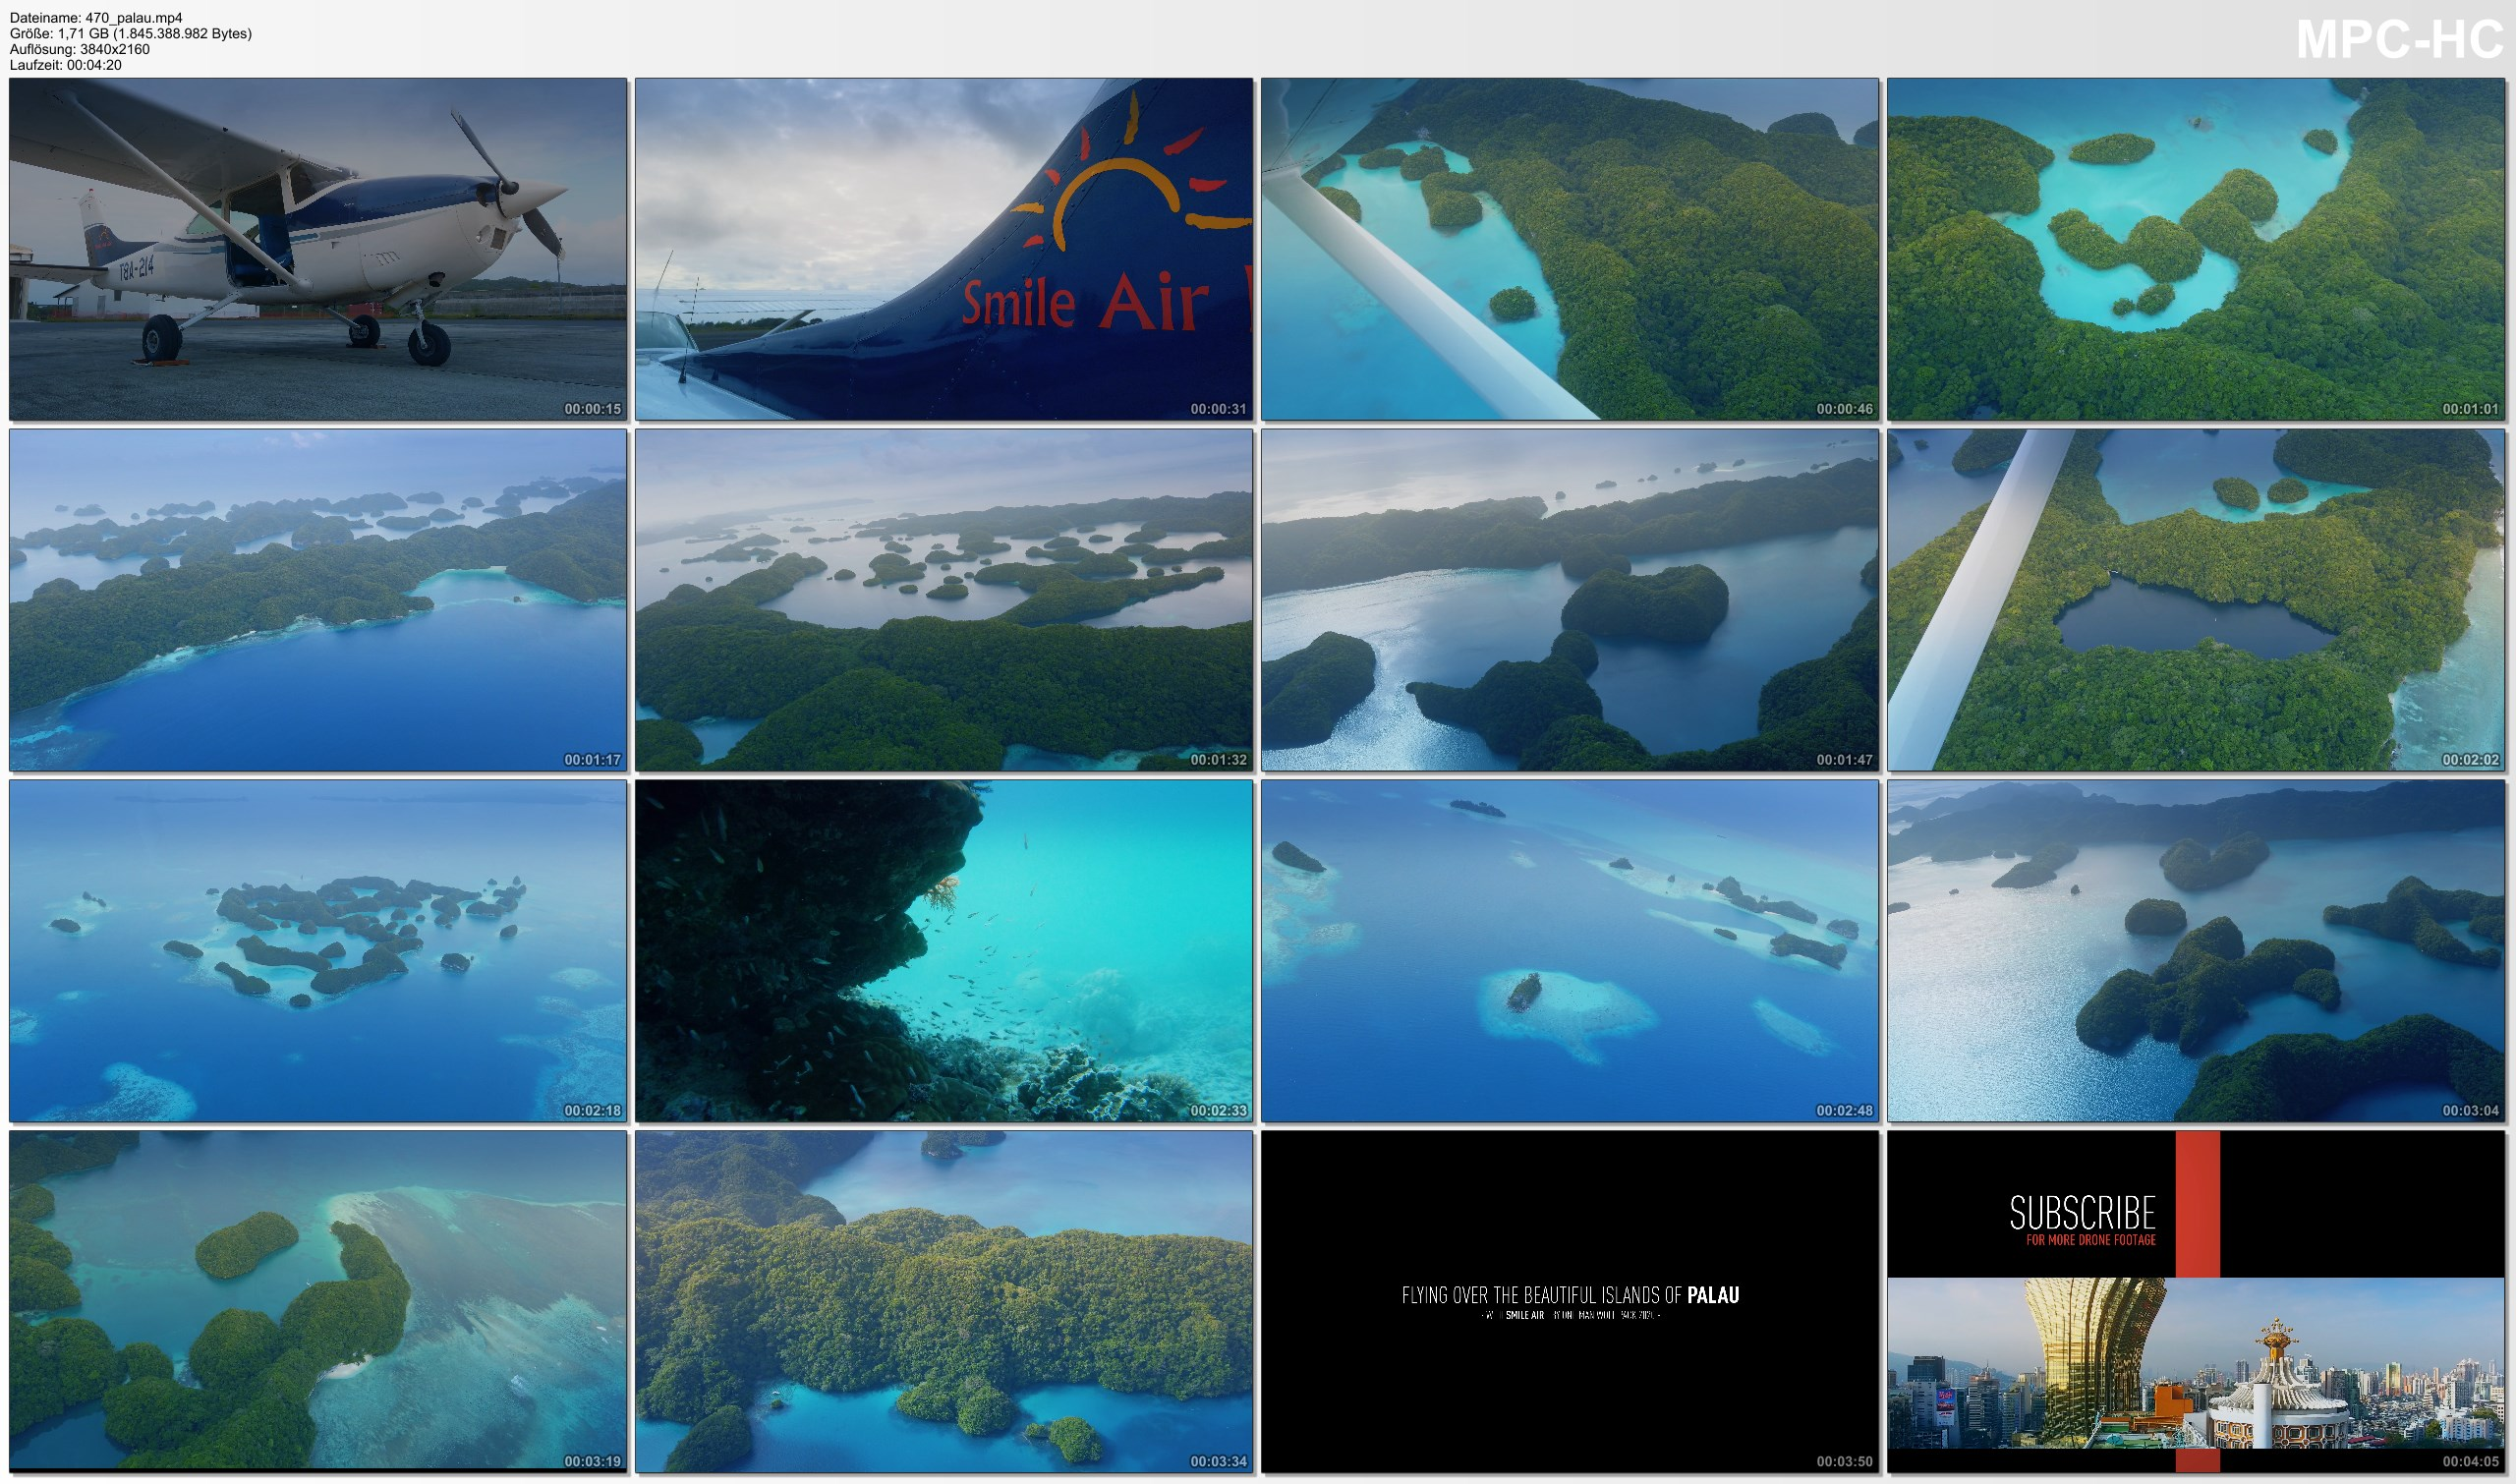 Pictures from Video 【4K】Flying over Palau | 2020 | Cessna Smile Air | Rock Islands Jellyfish Lake | UltraHD Travel Video